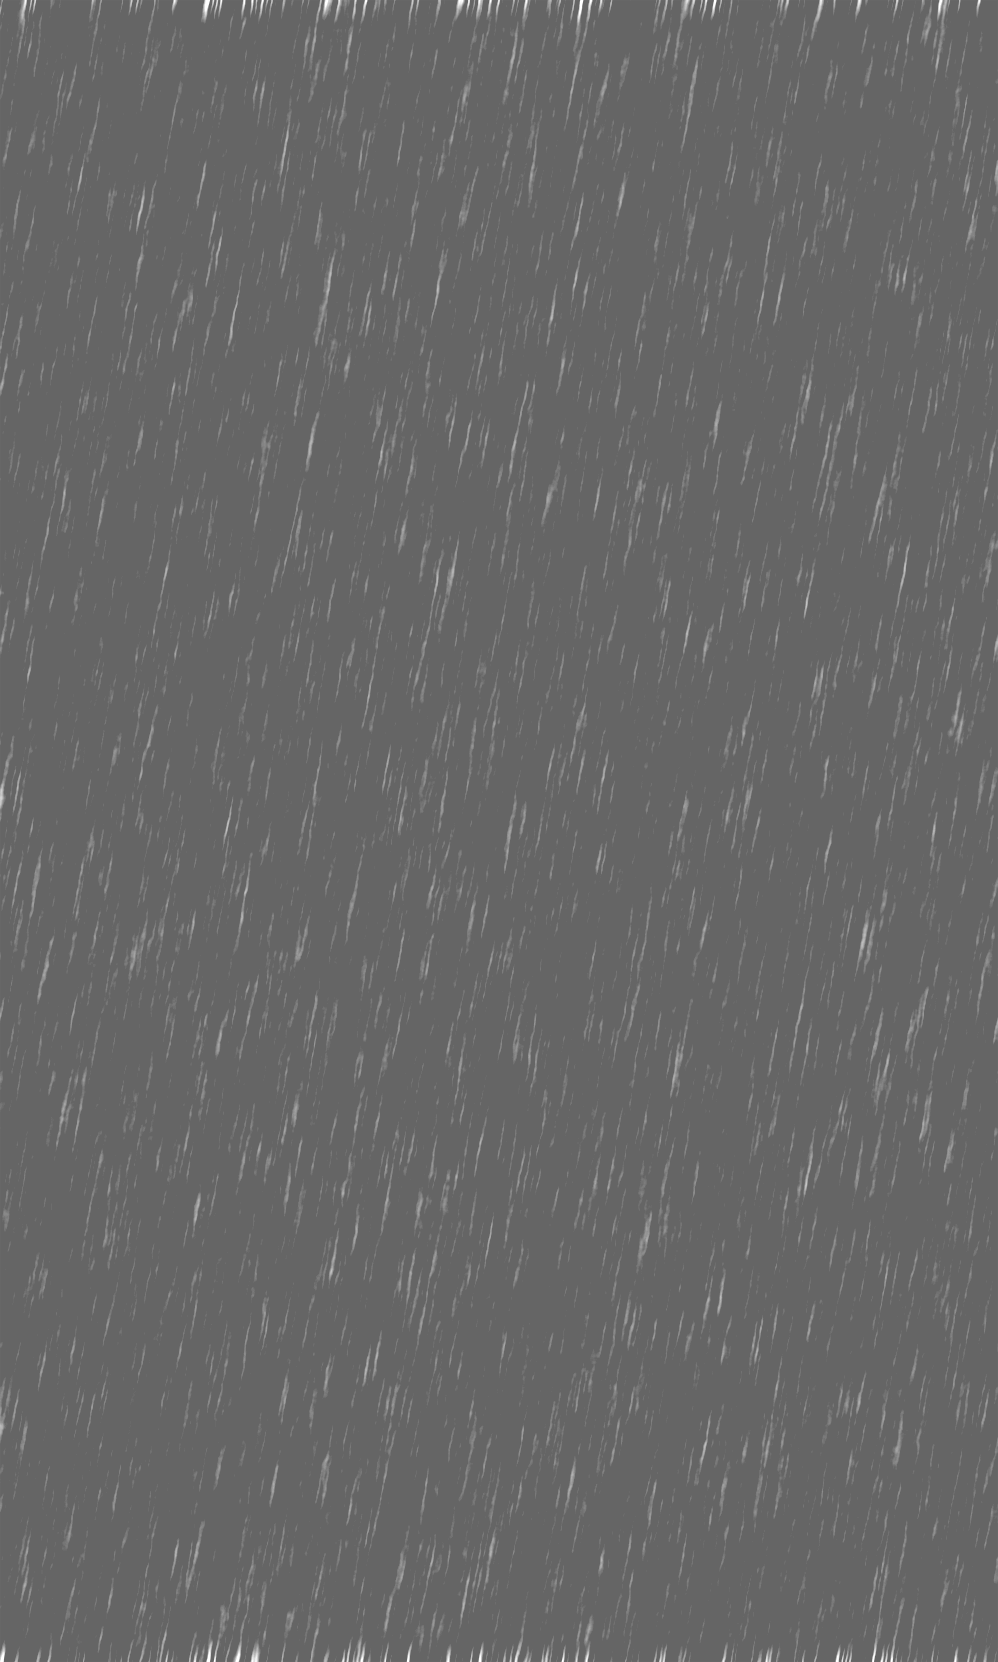 And Asphalt Effect Surface Black Rain White PNG Image